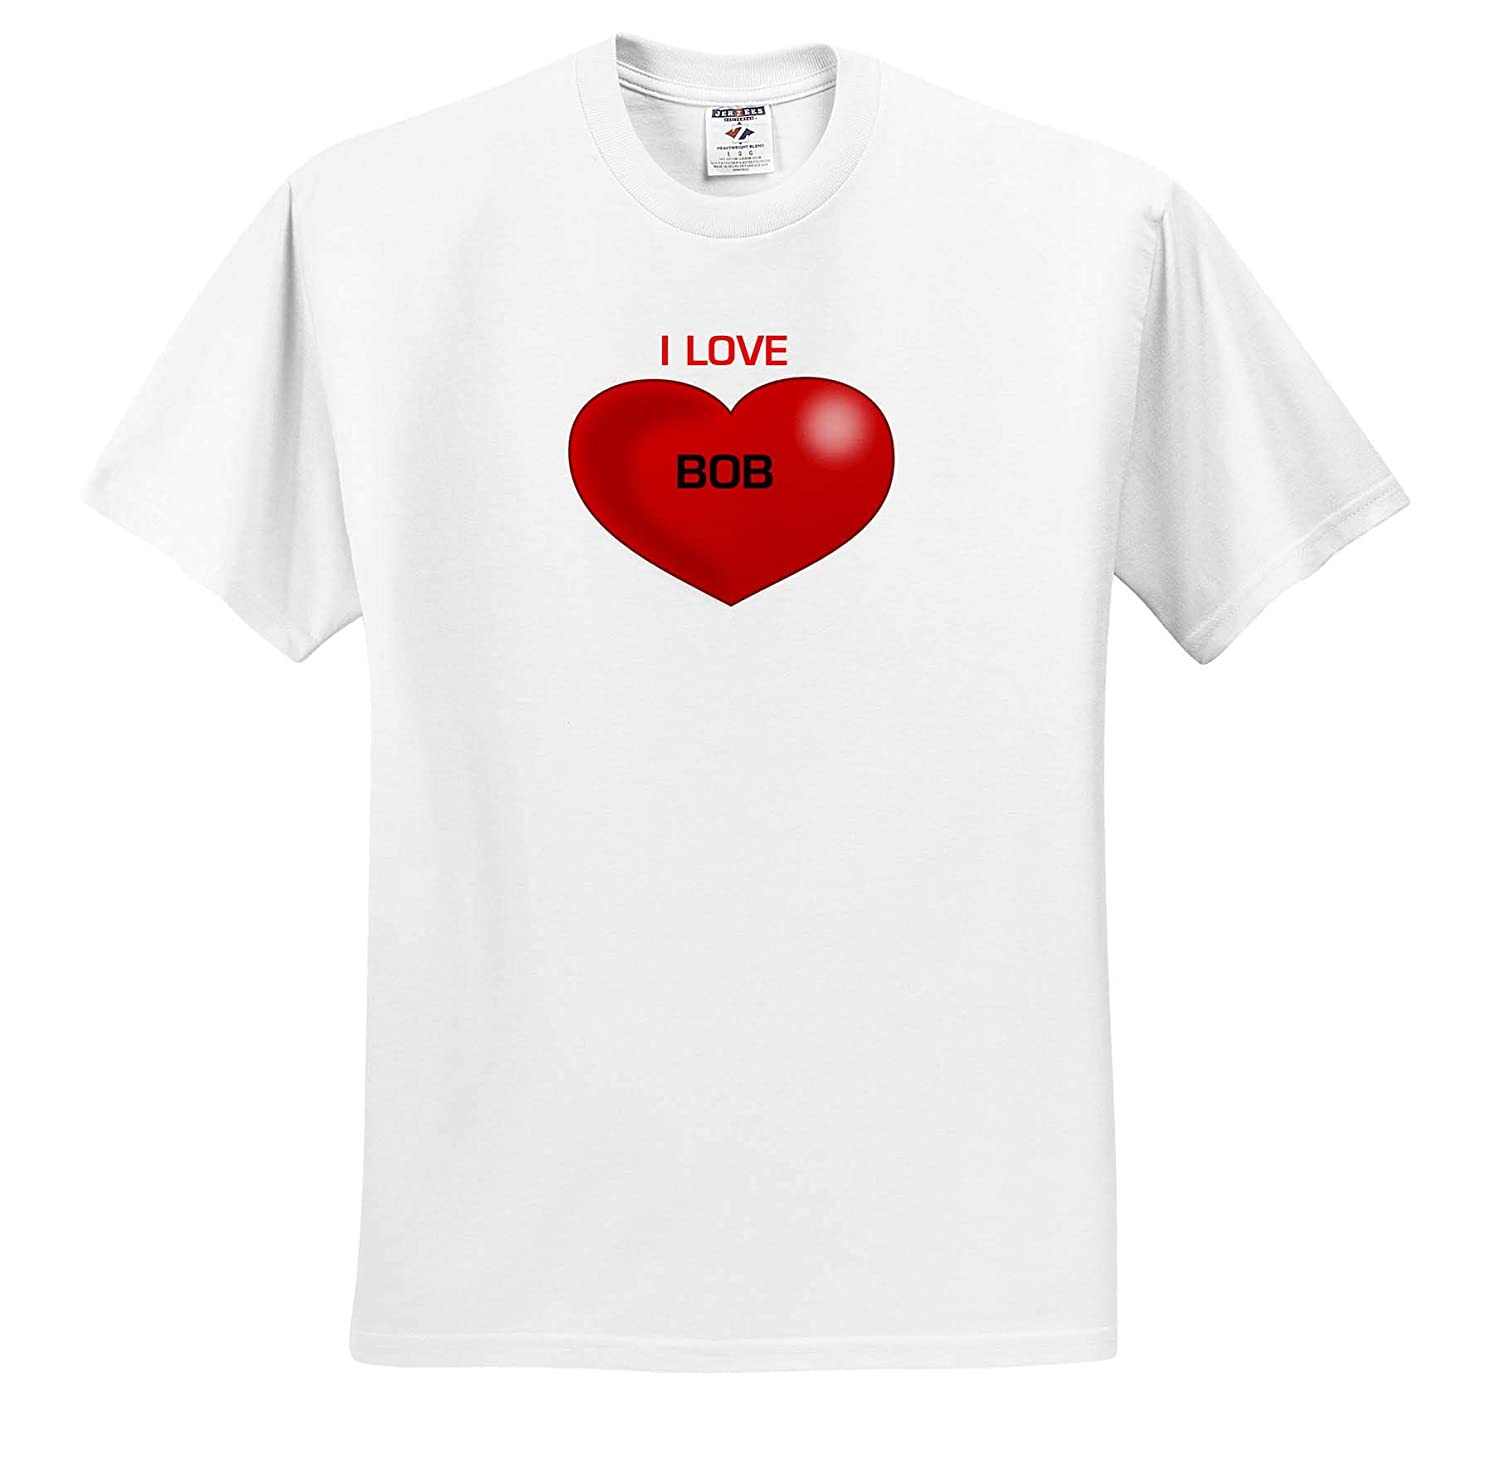 3dRose Lens Art by Florene Image of I Love Bob On Red Heart Love Hearts with Names T-Shirts